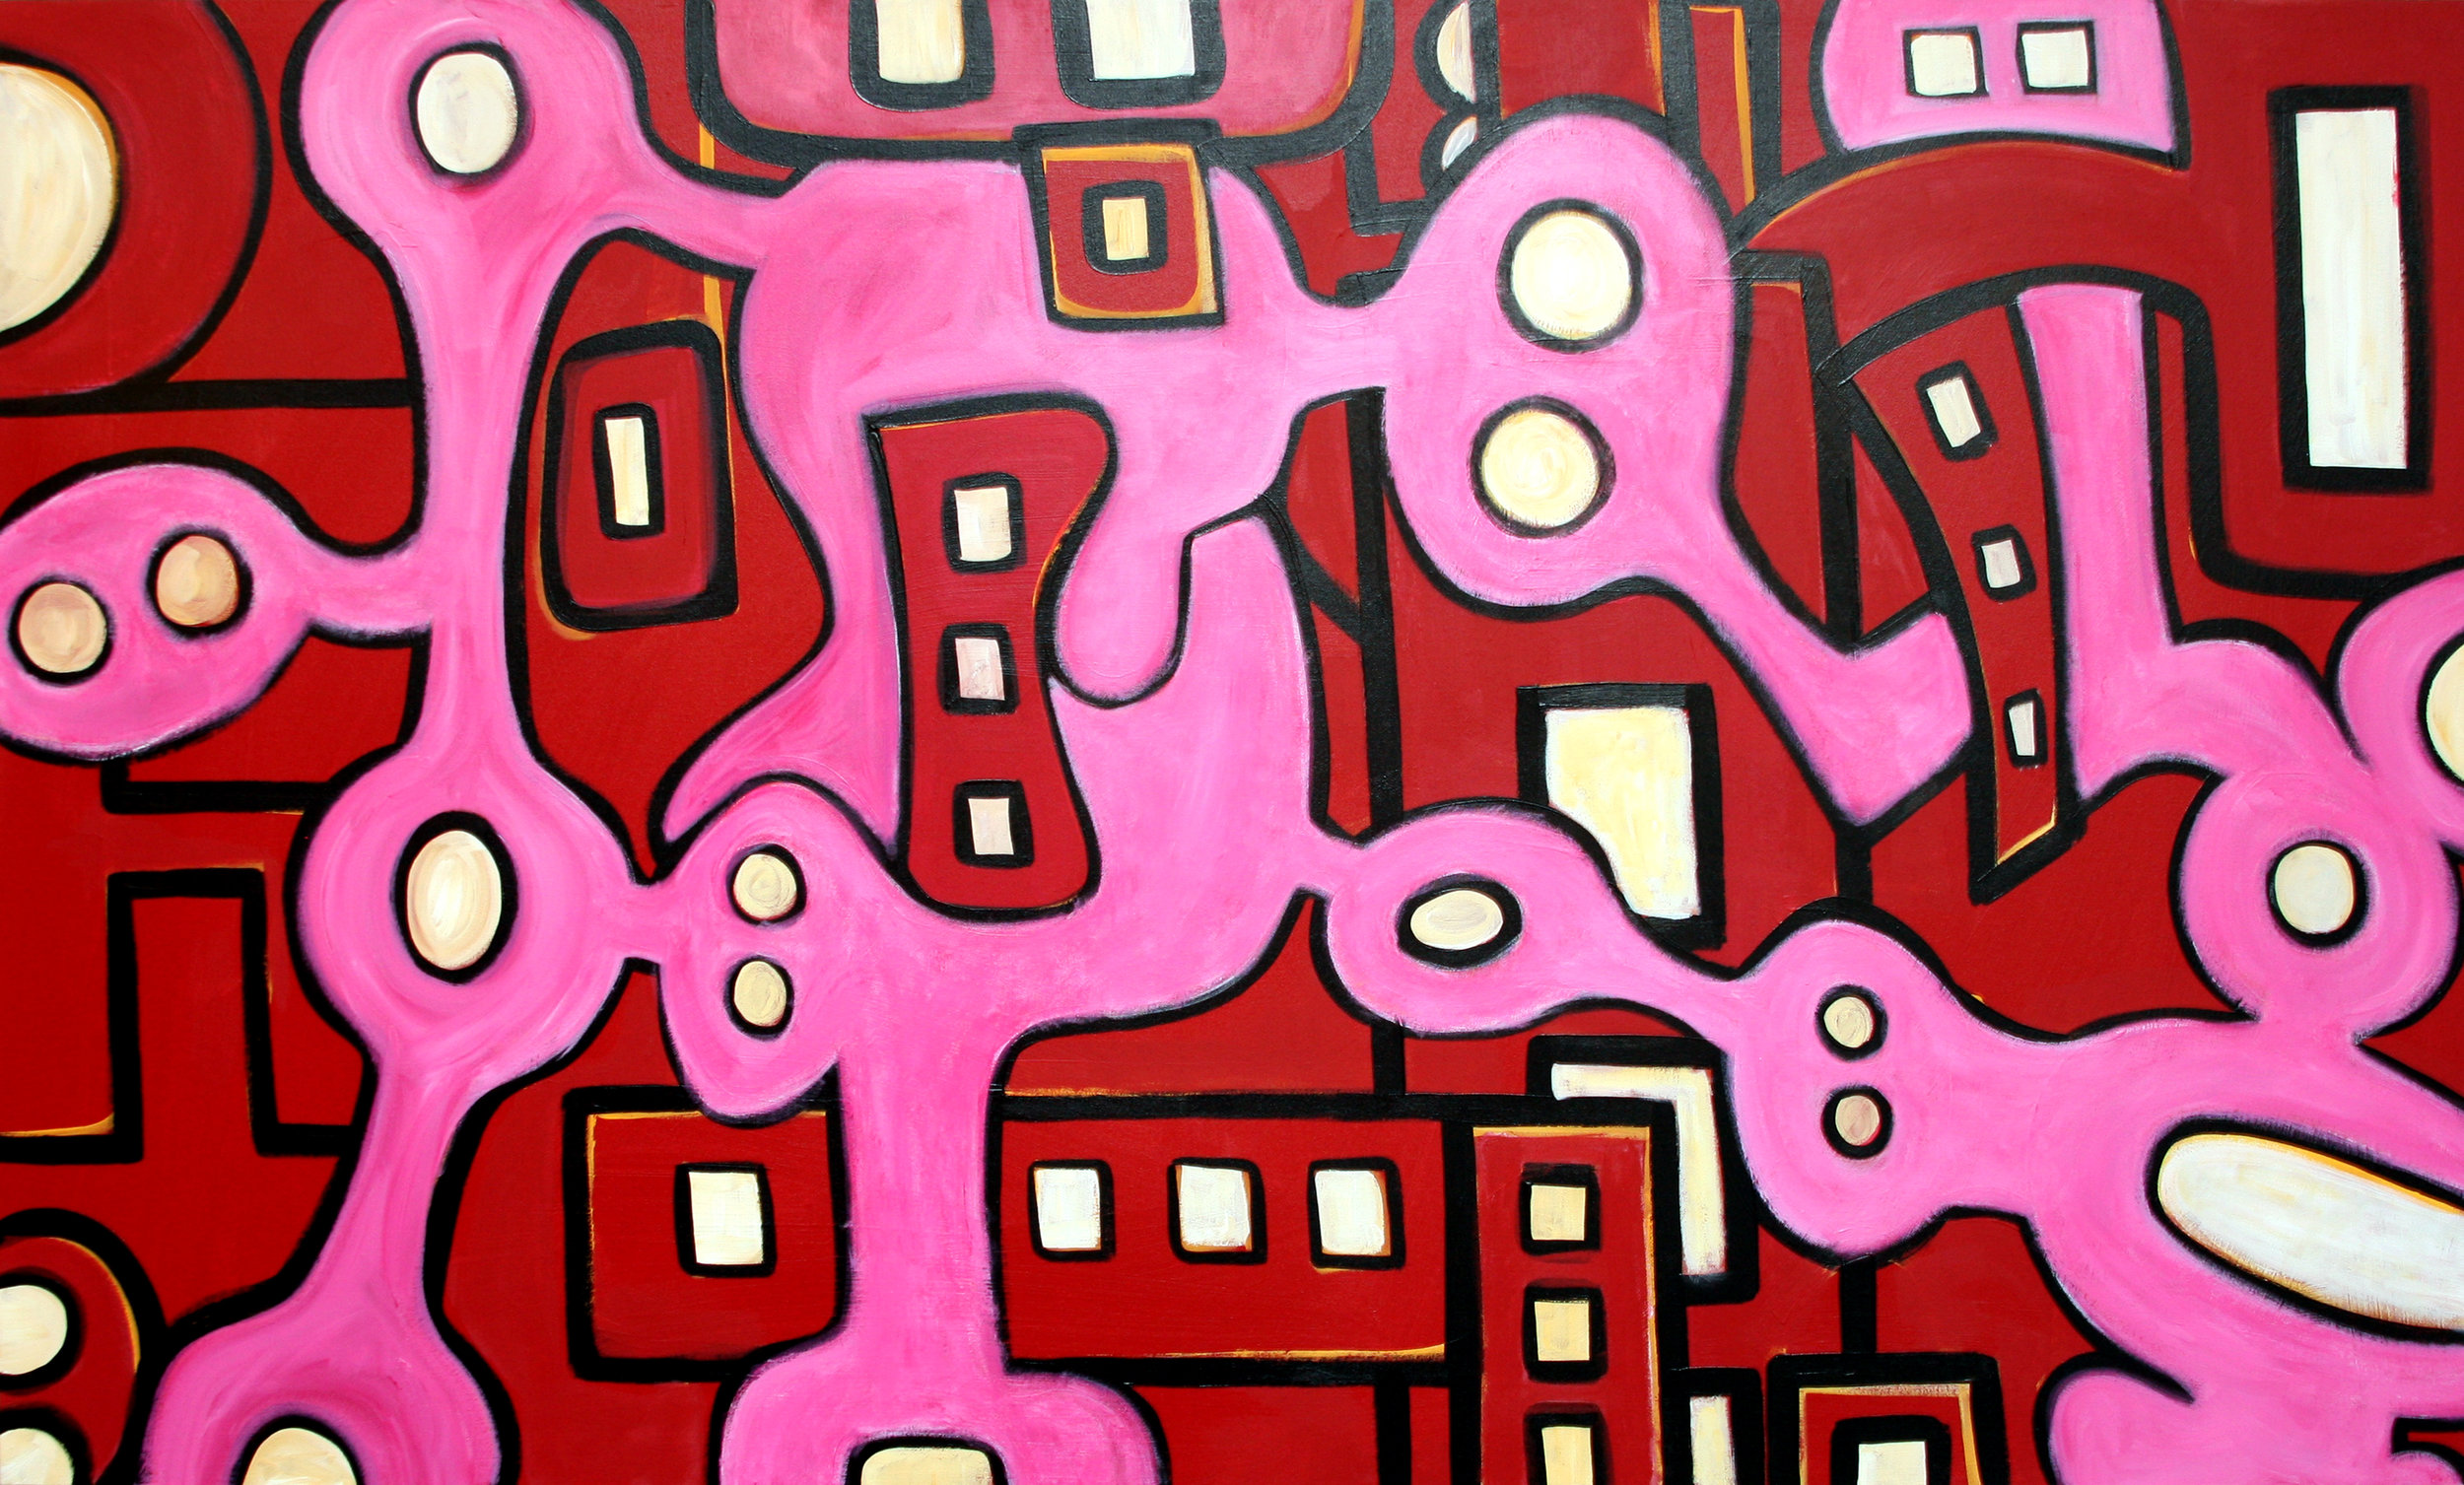 Inertia in Motion in Red and Pink, 2003